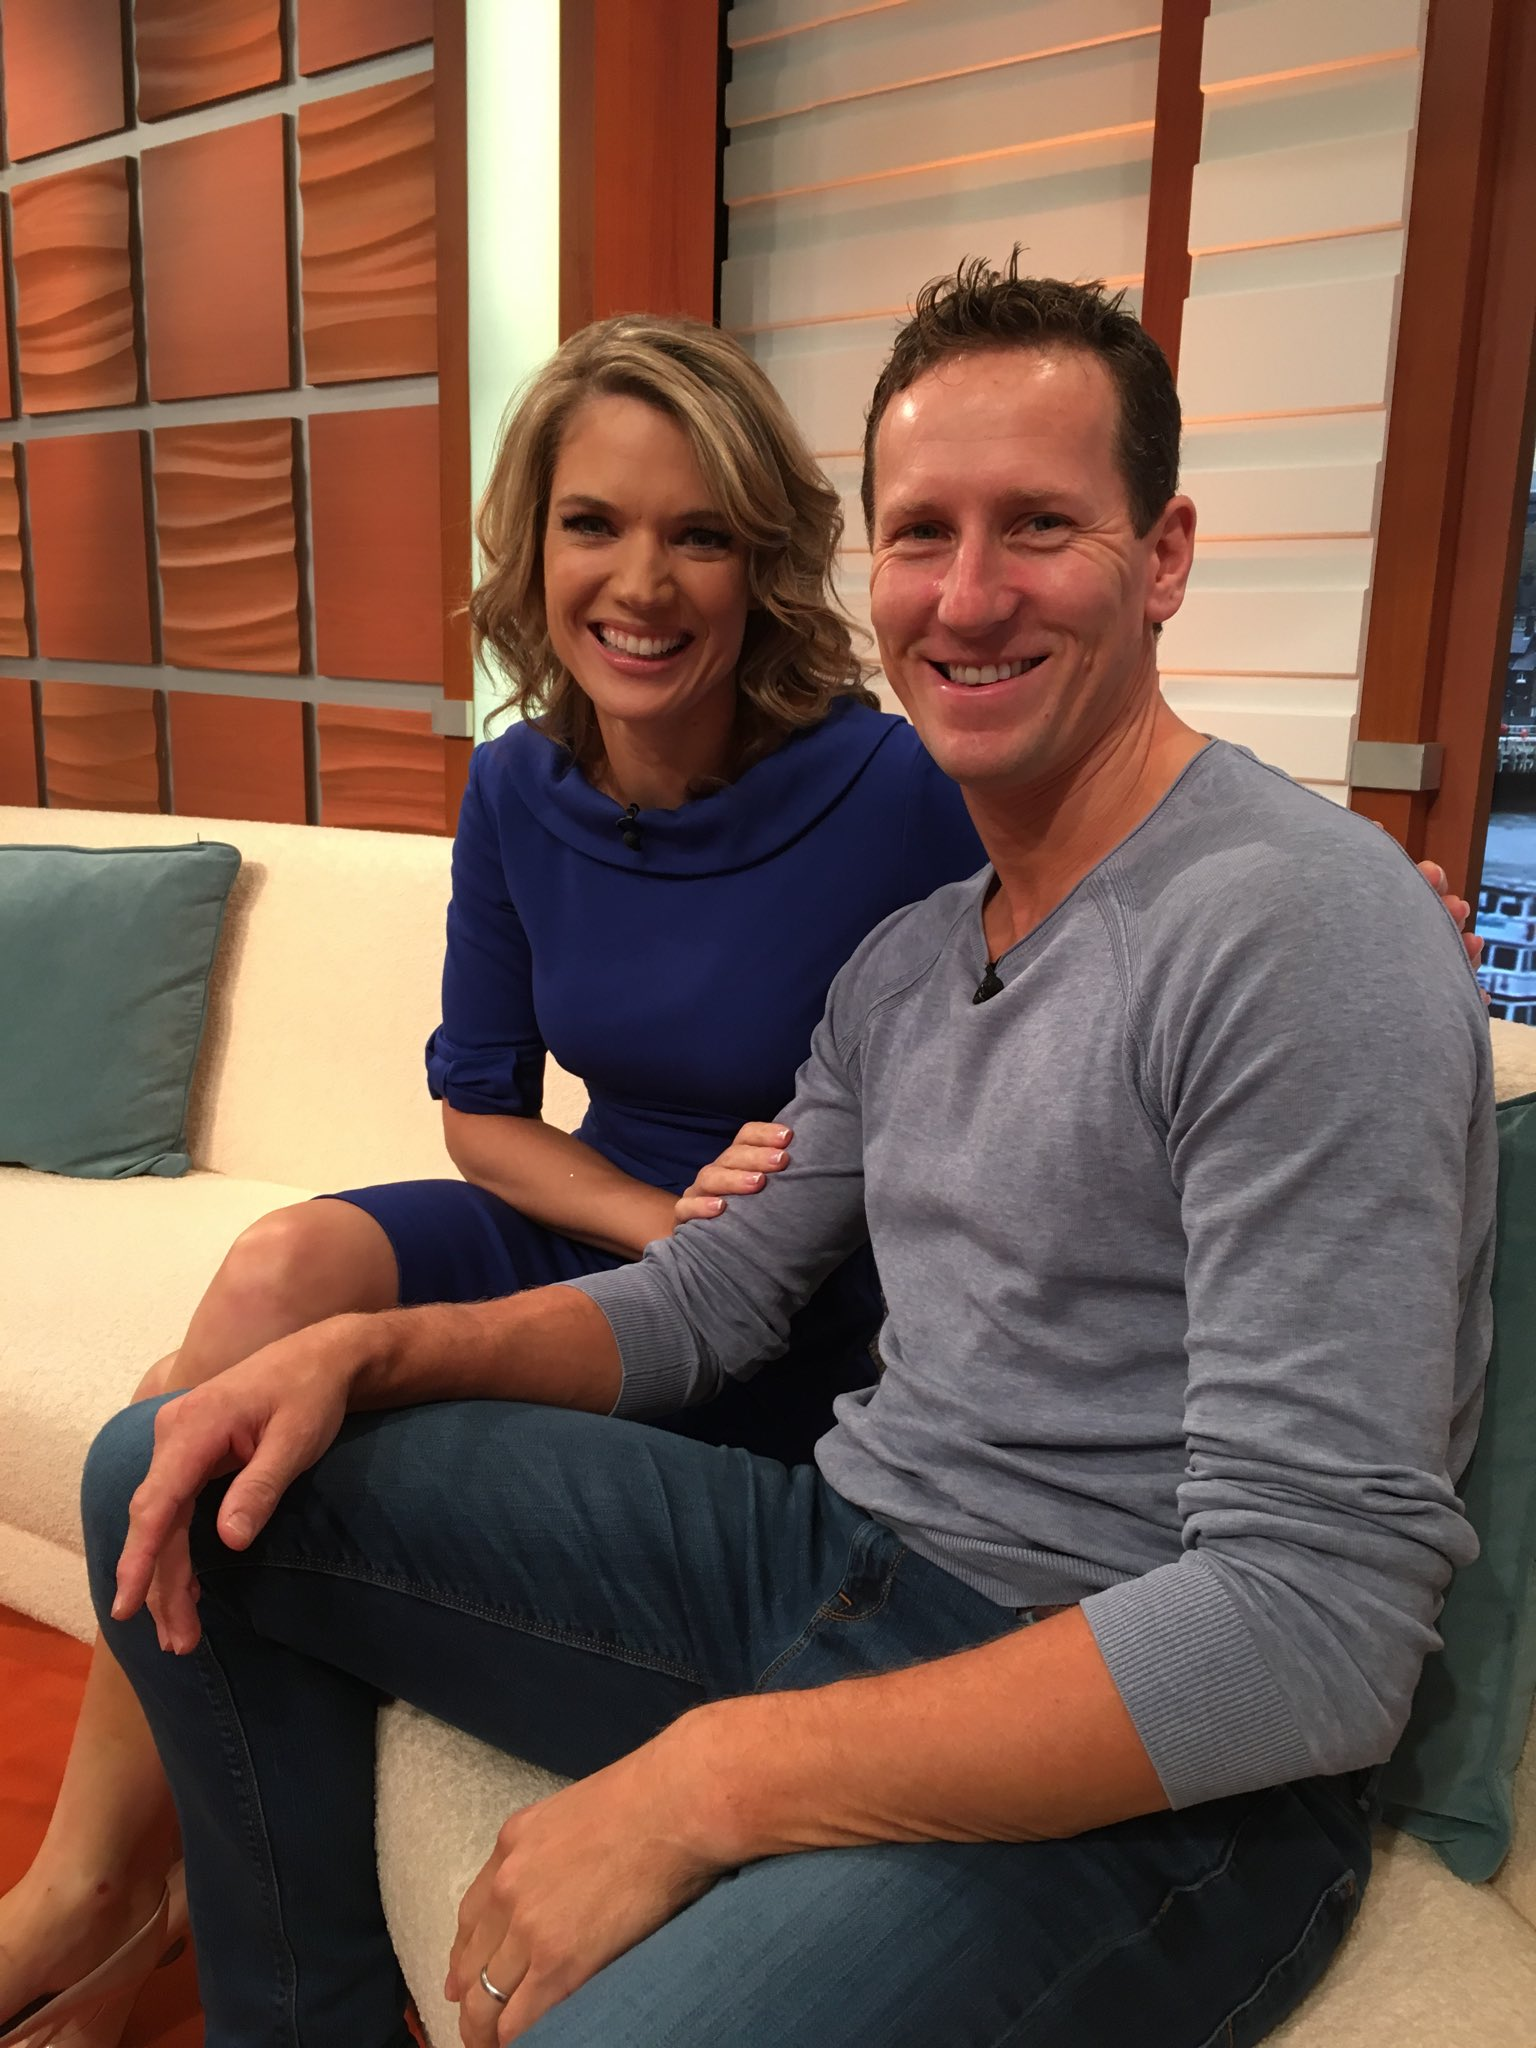 Bad boy @BrendanCole defending @CharlotteHawkns honour @gmb #Strictly https://t.co/hQnENF58v2